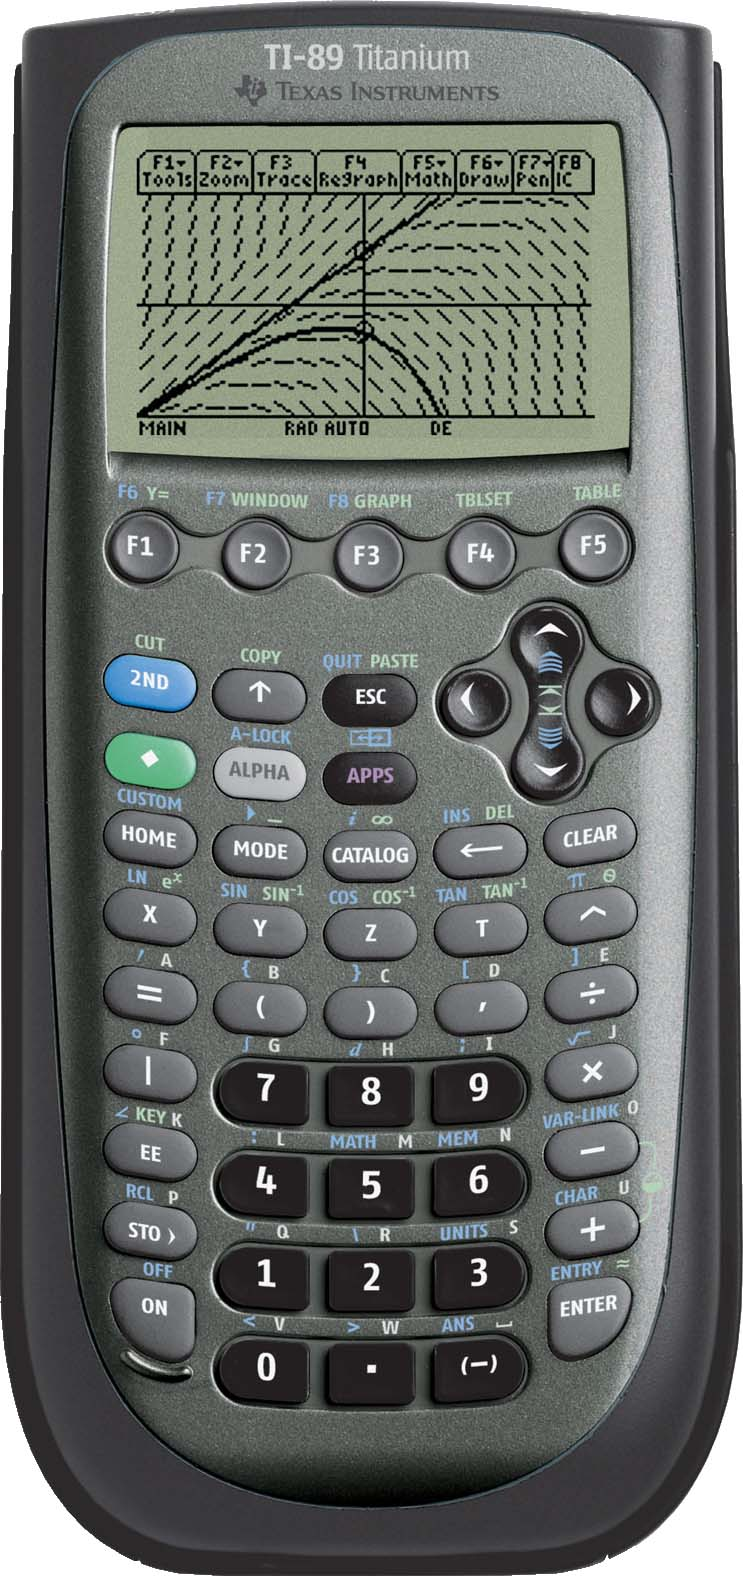 Texas Instruments TI 89 Titanium Graphing Calculator with Linear Programing